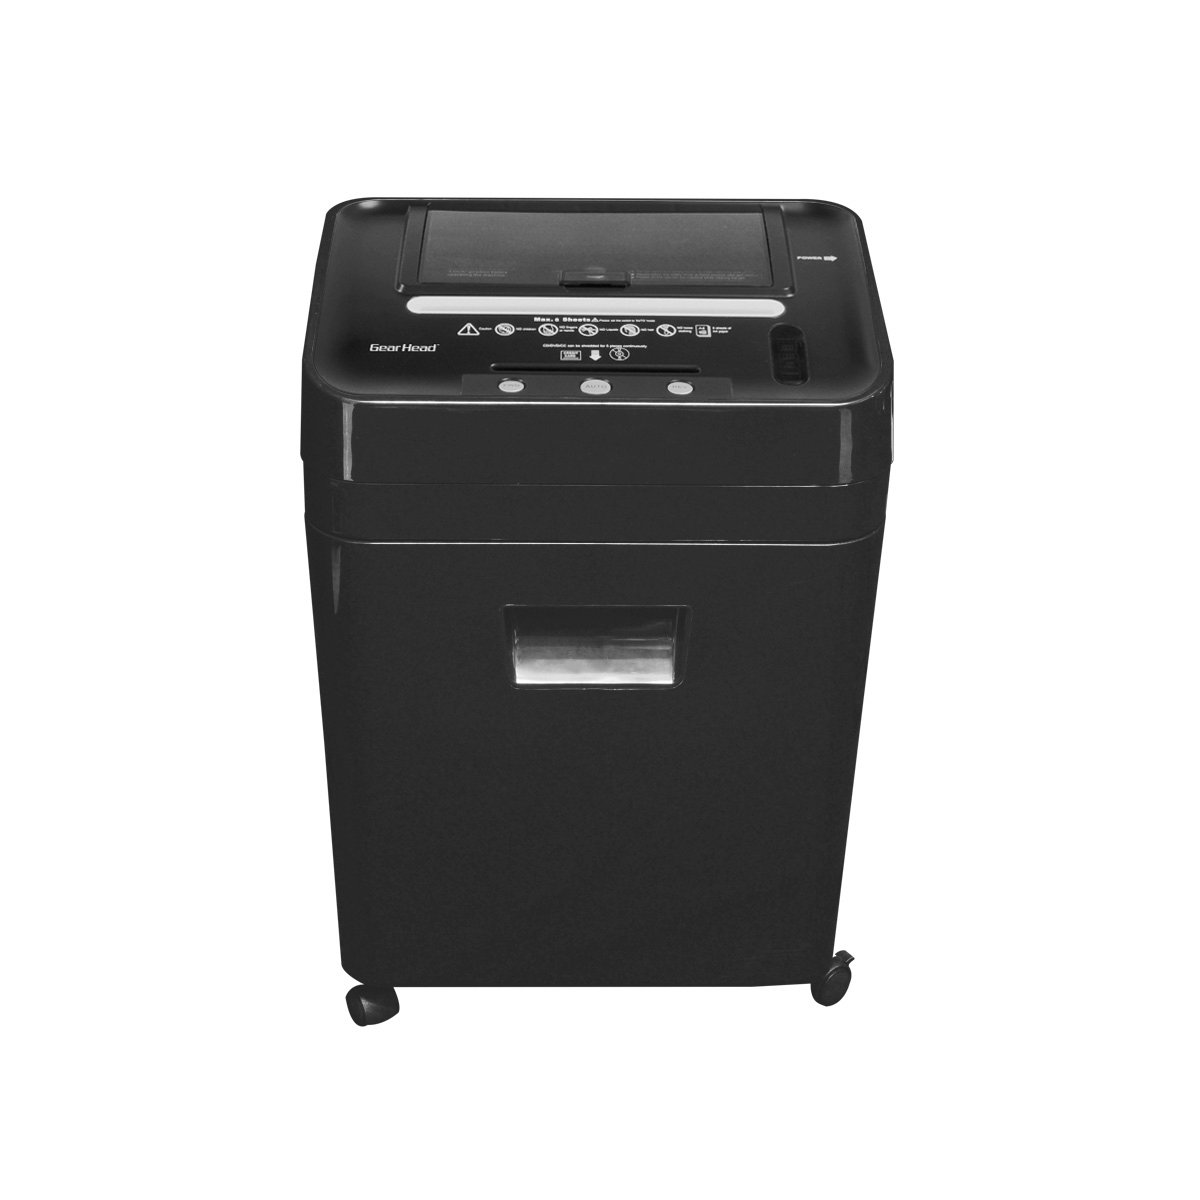 Price available in white or black for about 2399 for all four - Amazon Com Gear Head Ps8500mxb 75 Sheet Auto Feed Micro Cut Shredder With Cd Dvd Black Electronics